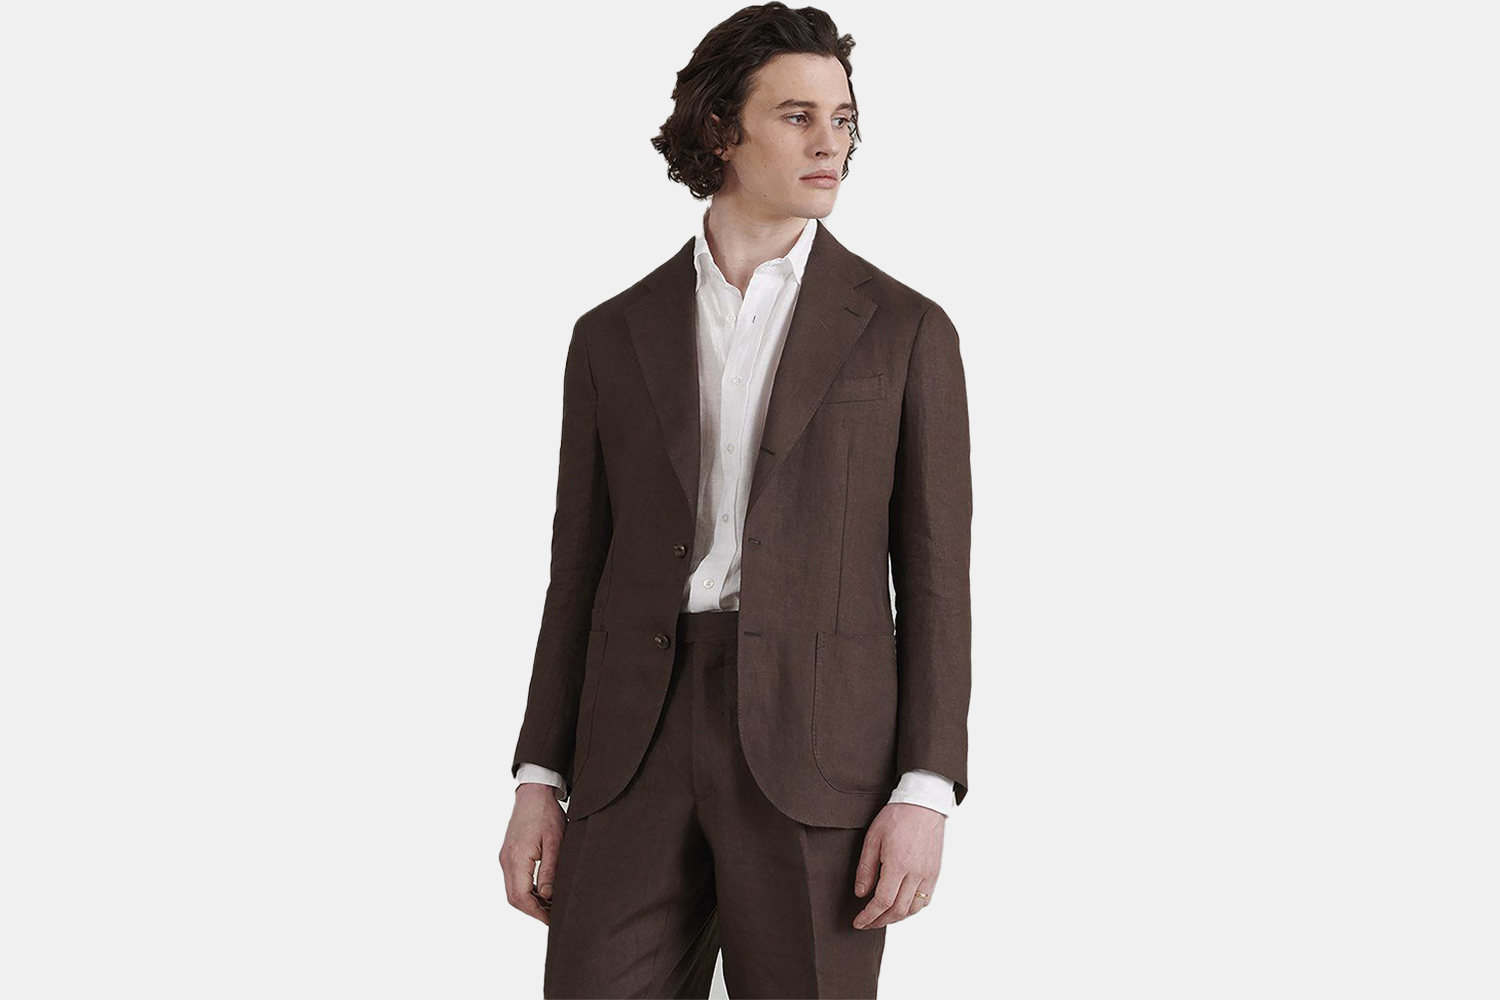 A brown tailored jacket